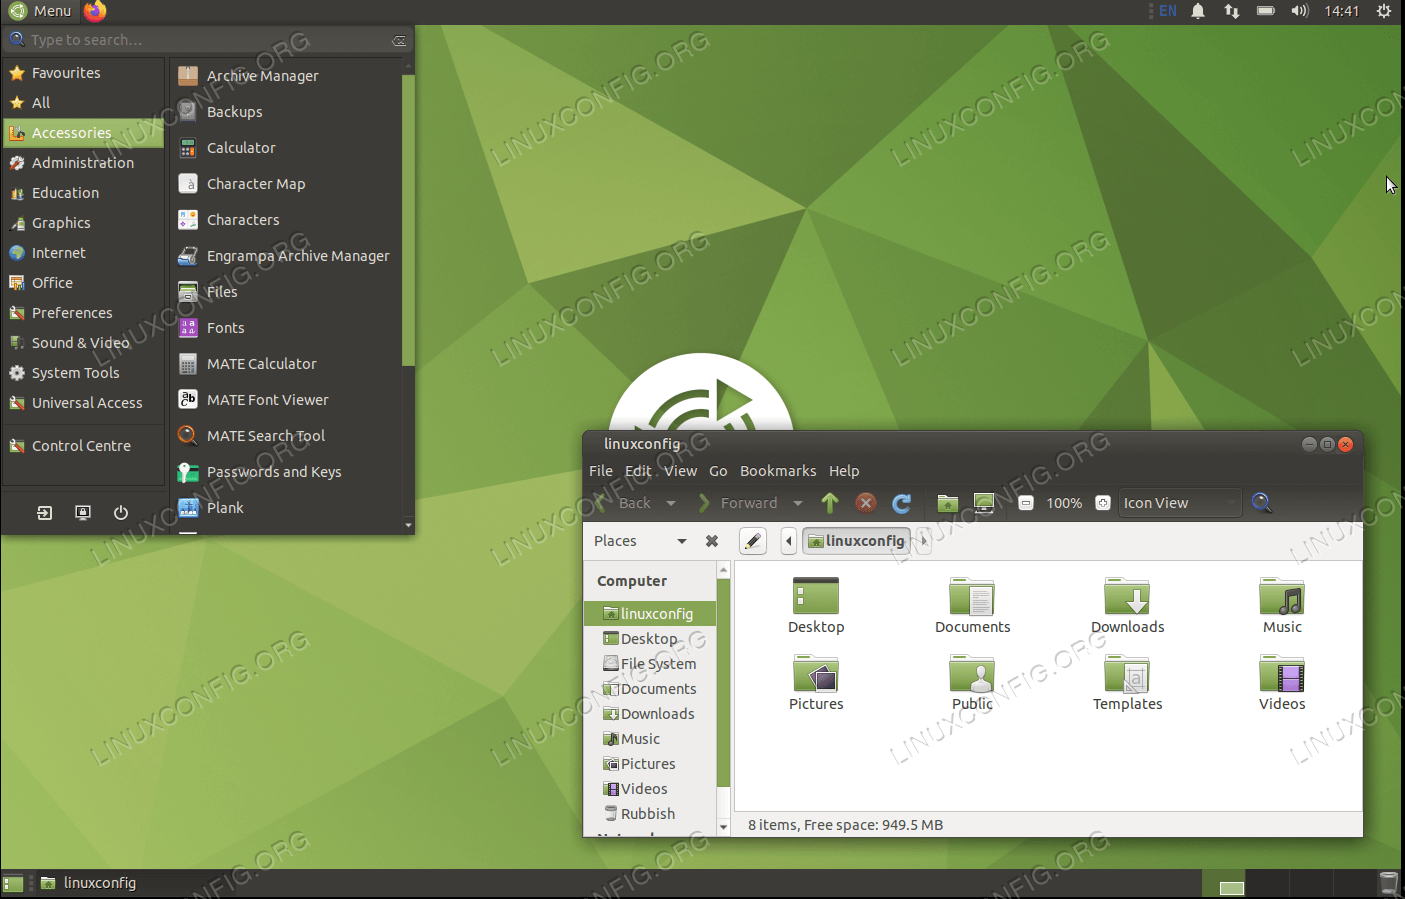 MATE desktop on Ubuntu 20.04 Focal Fossa Linux